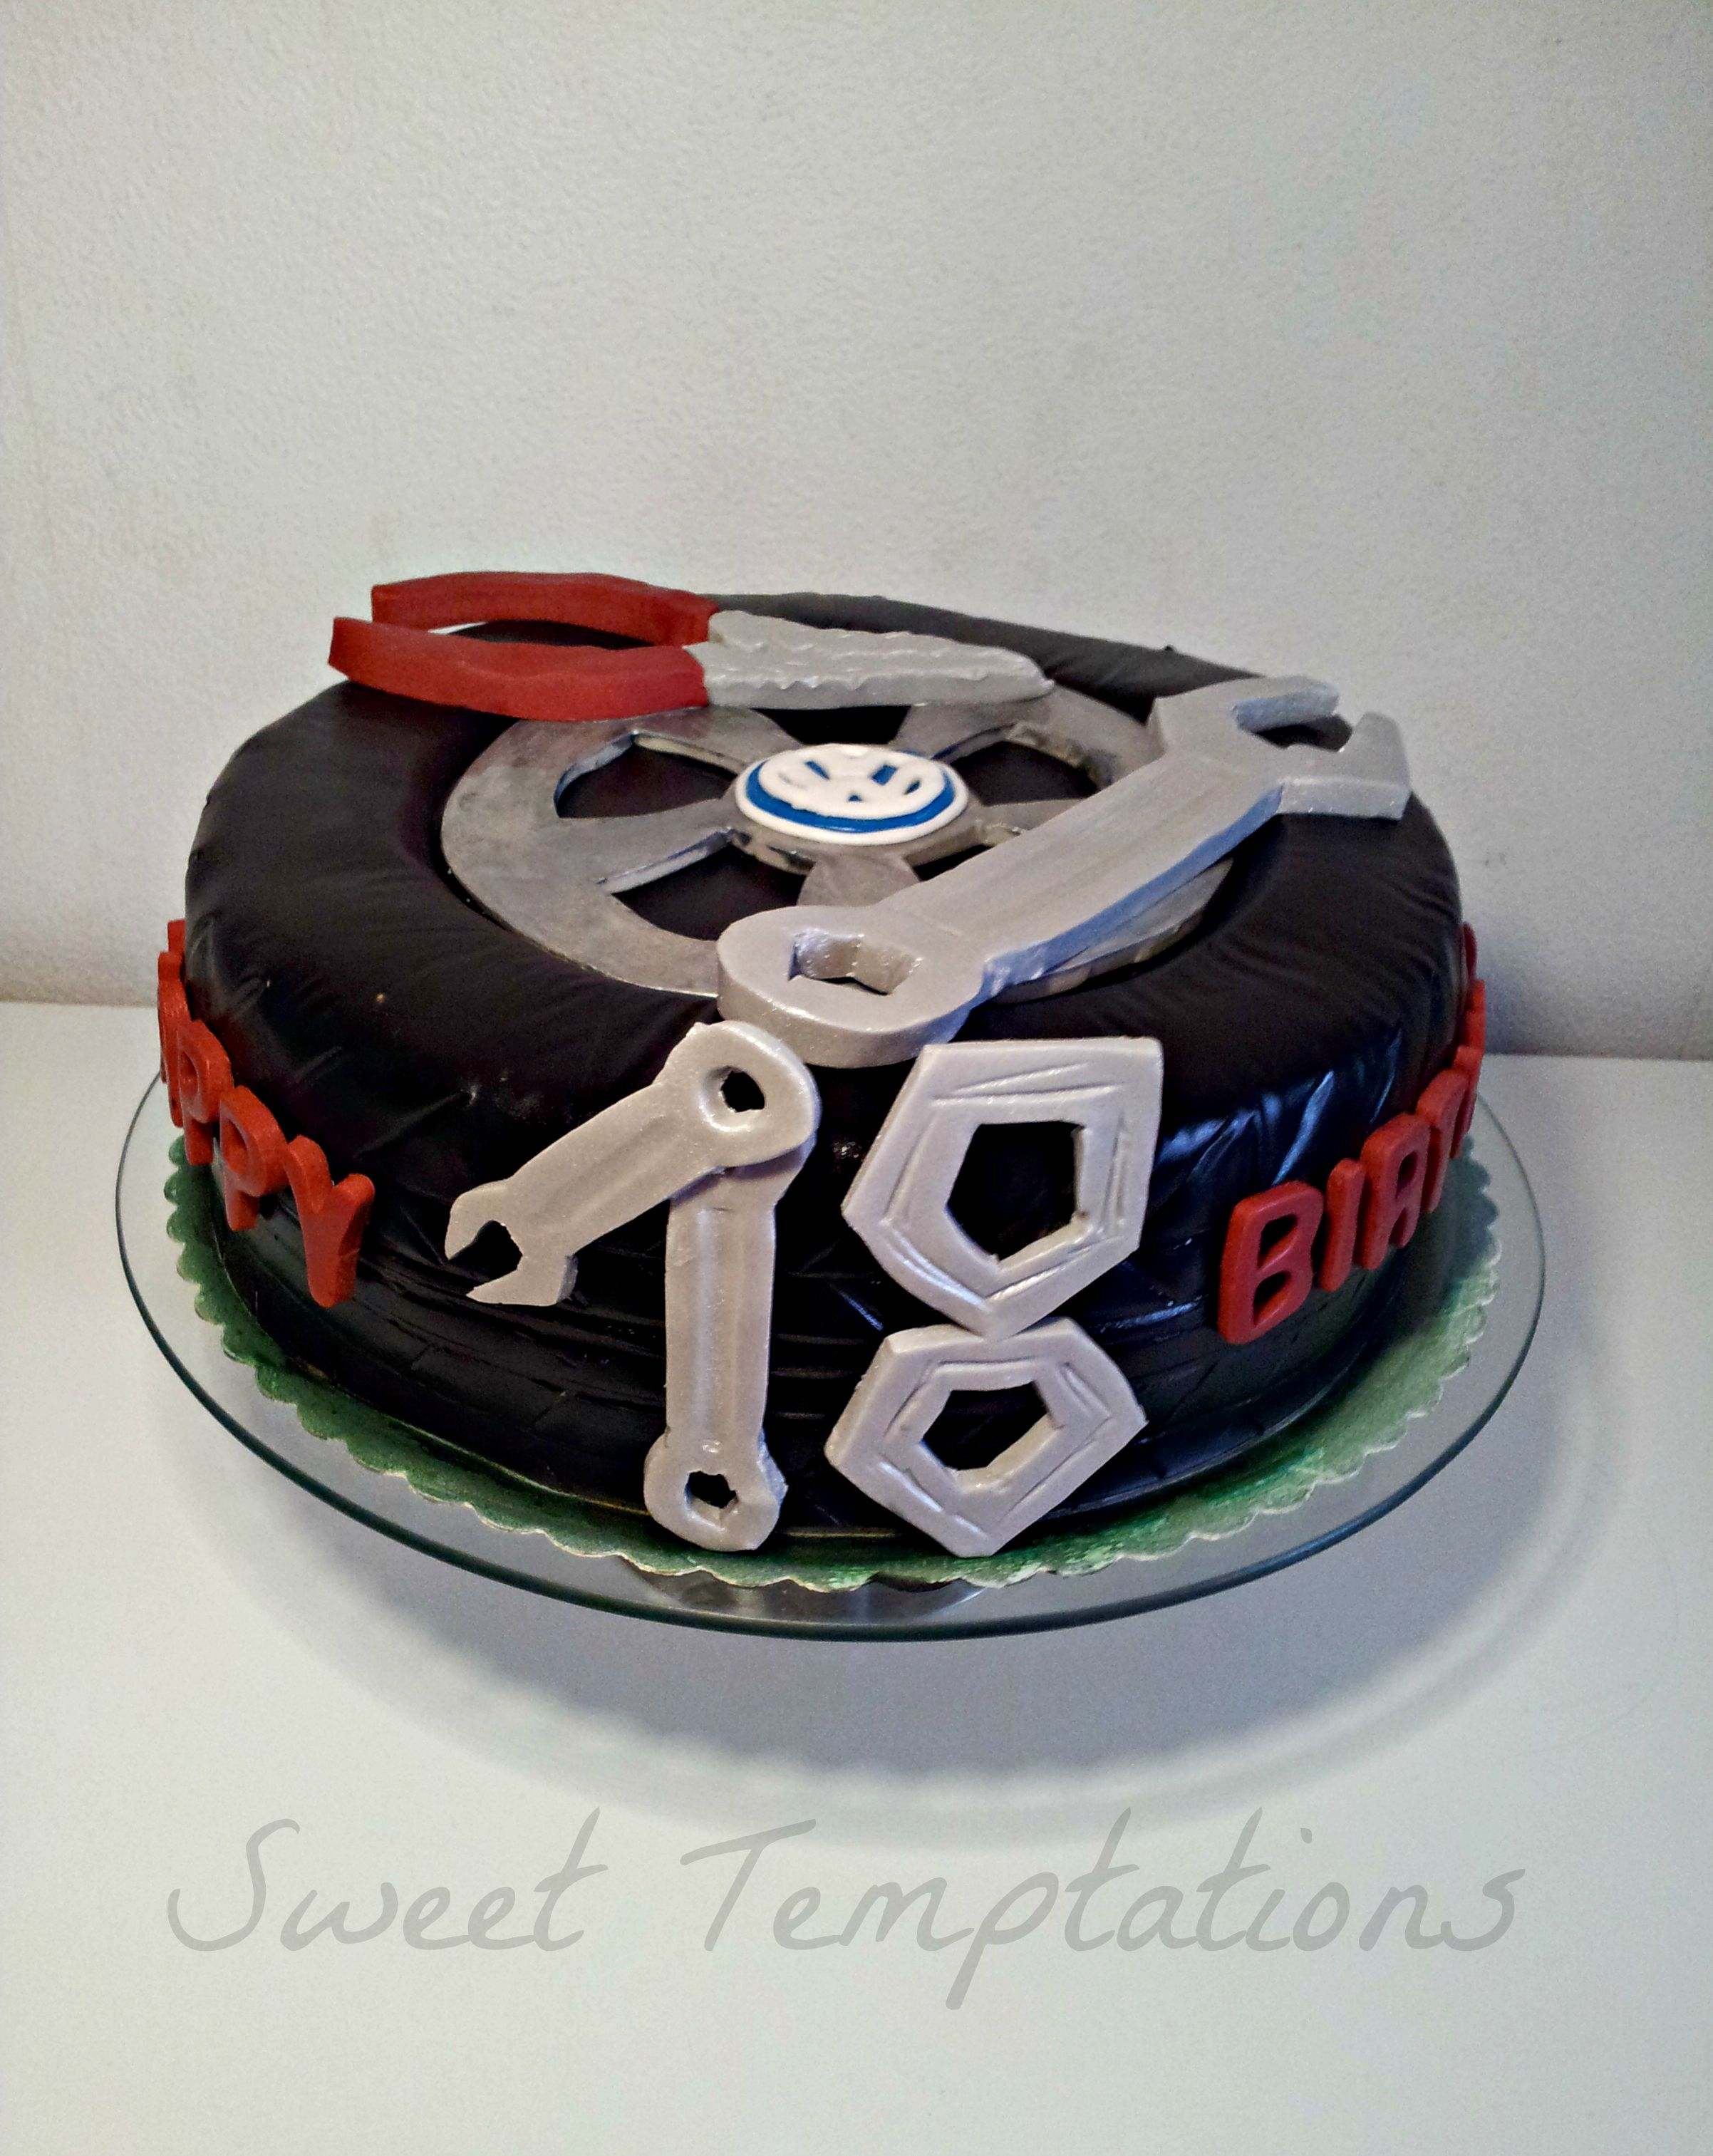 Car engine birthday cake Birthday cake ideas Pinterest Car